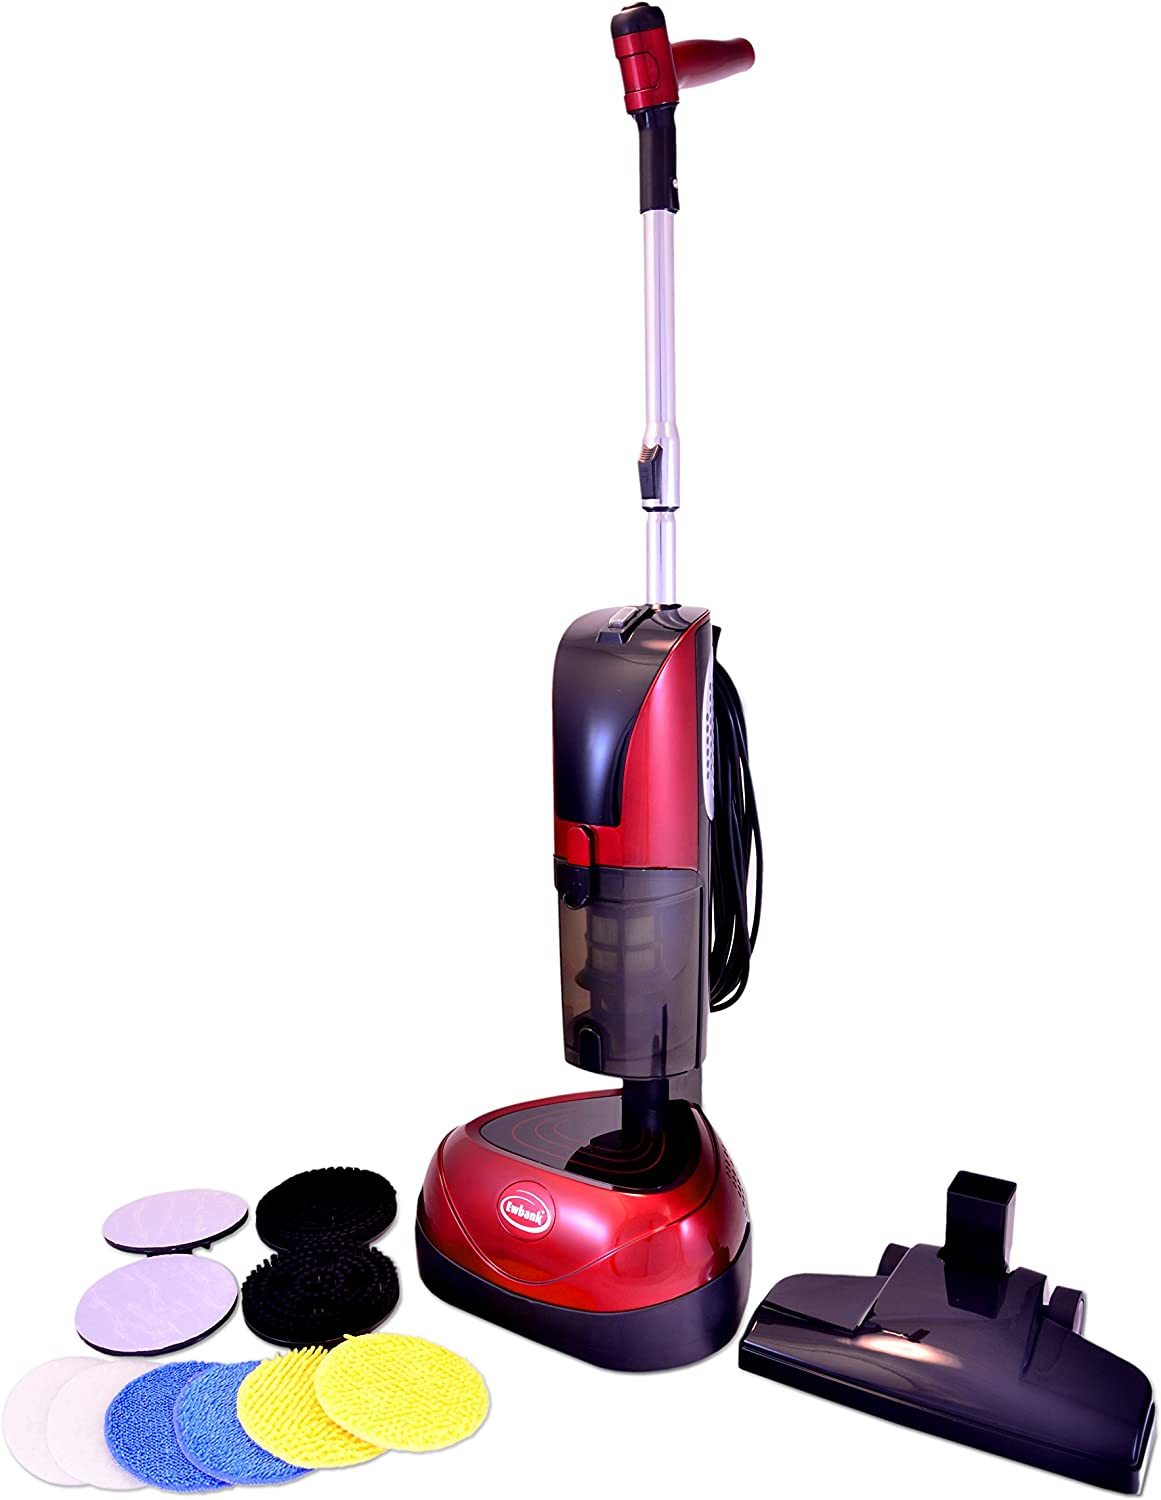 Ewbank EPV1100 4-in-1 Floor Cleaner, Scrubber, Polisher and Vacuum, Red Finish, 23-Foot Power Cord